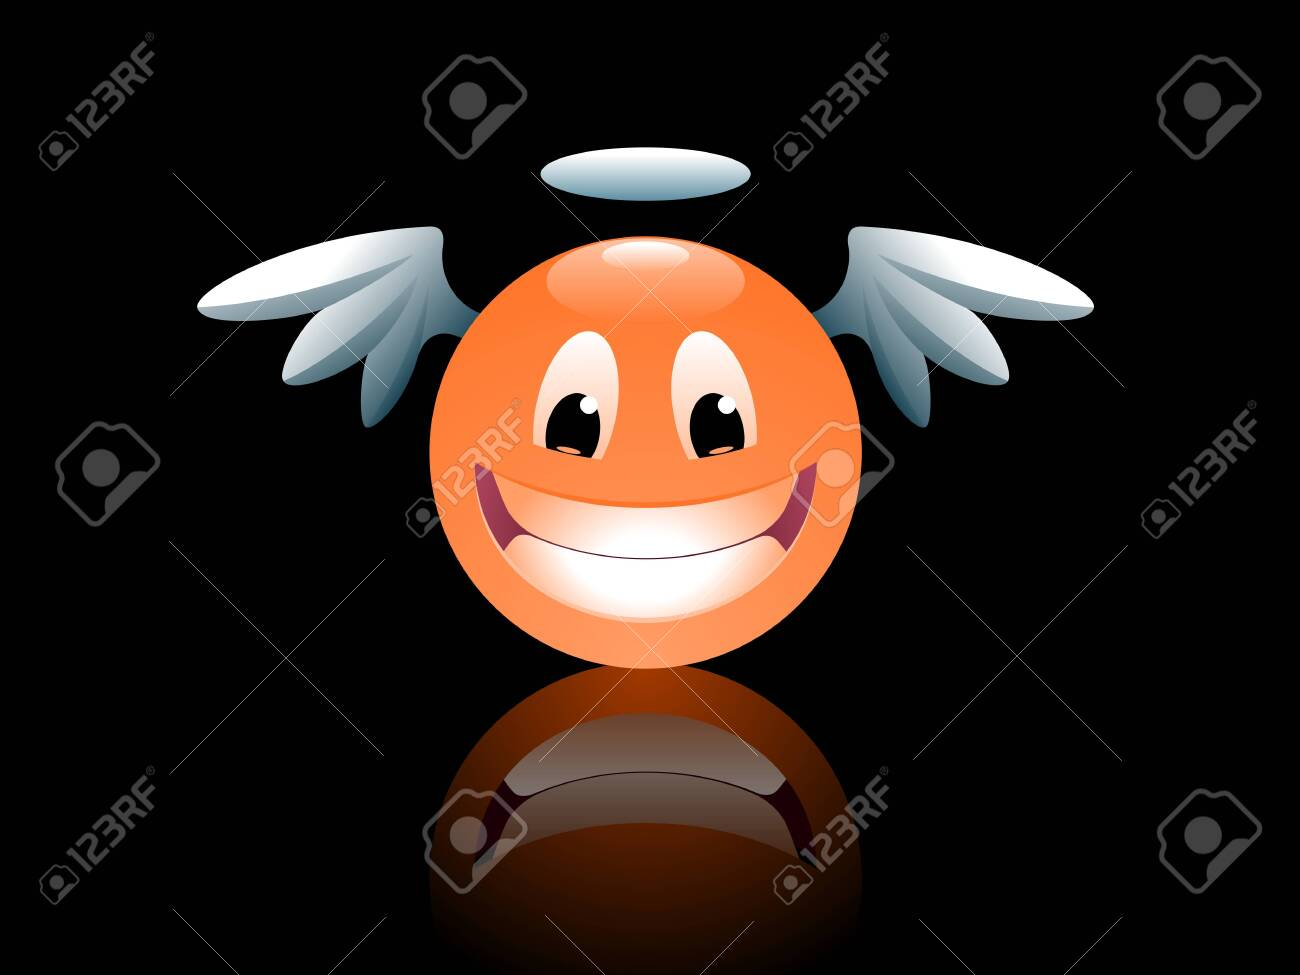 Smiley Angel. Funny cartoon smiley face looking like an angel. - 149916757